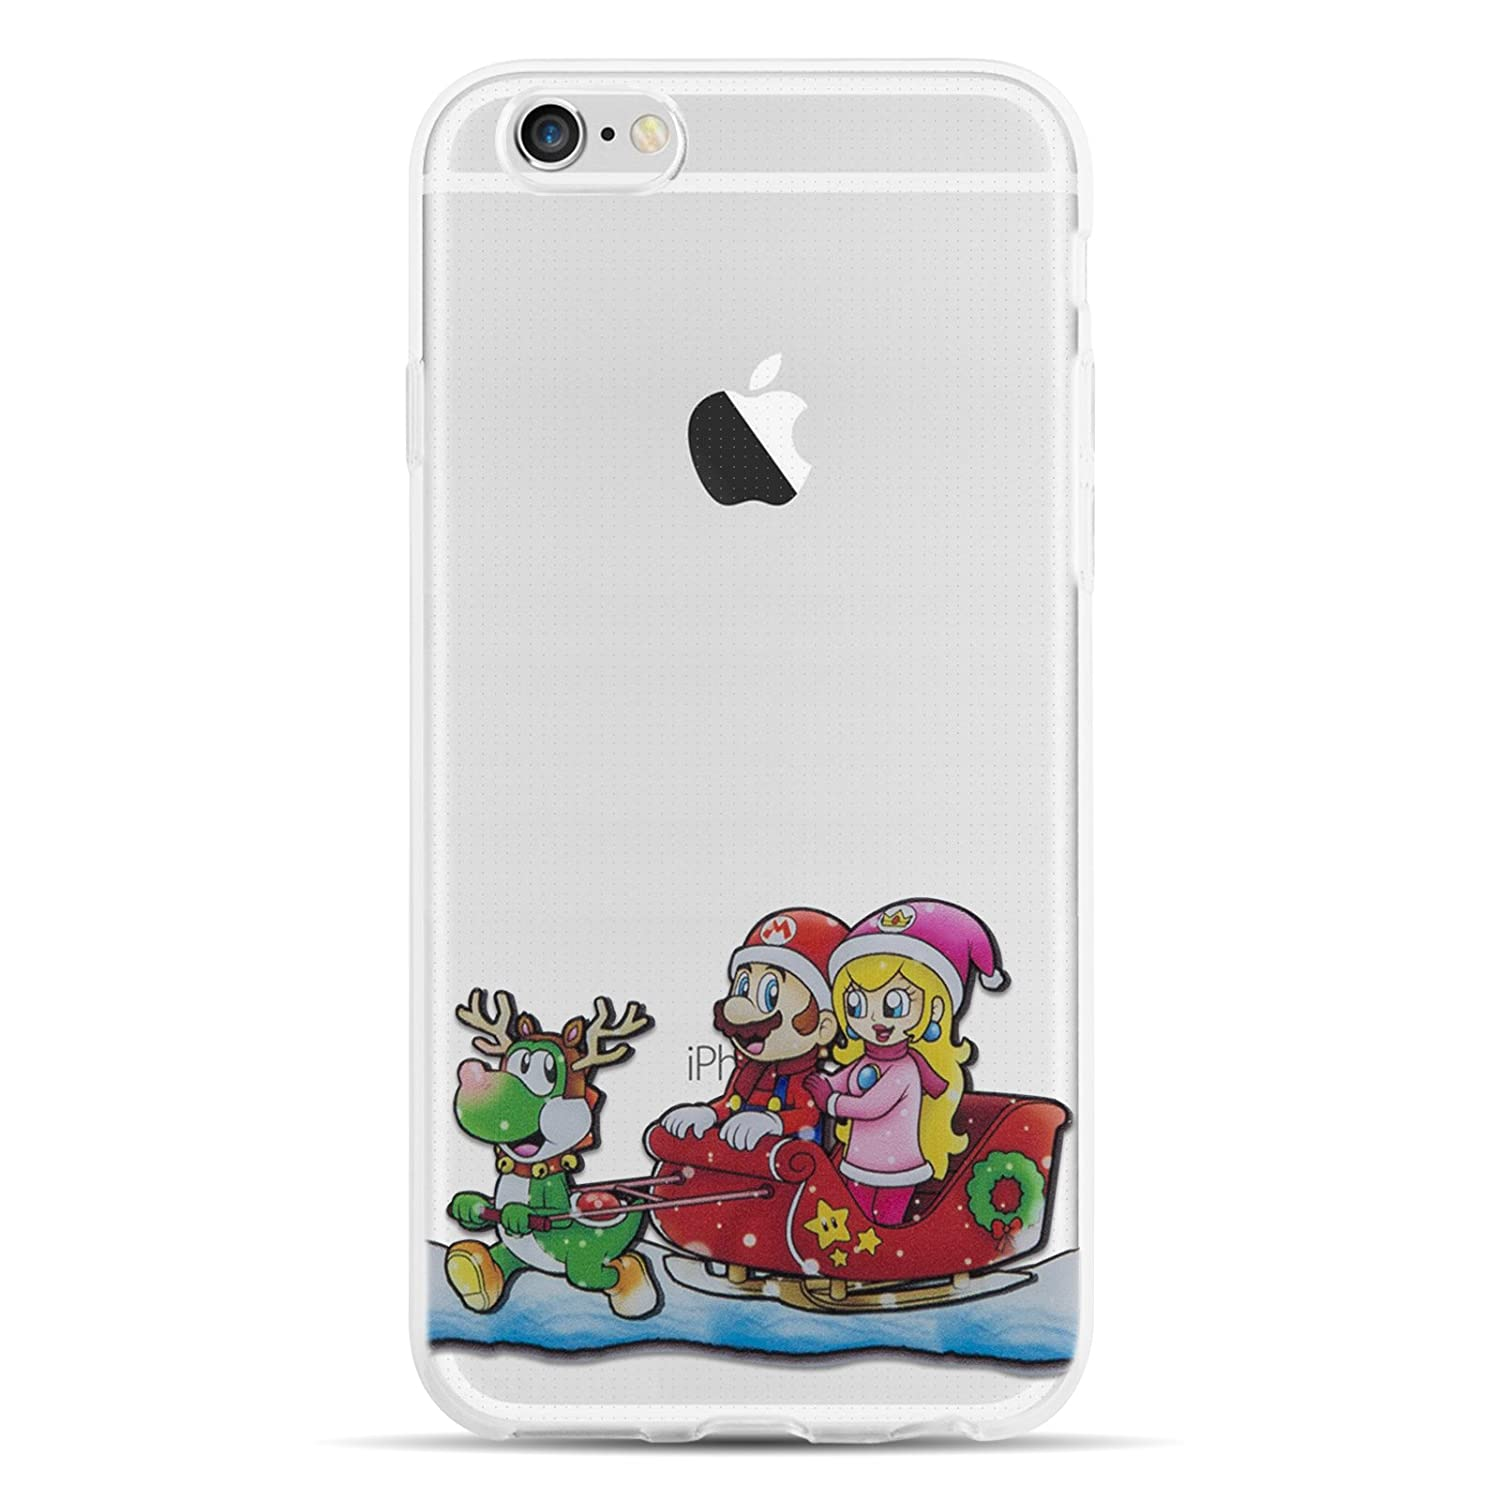 jammylizard iphone 6 case